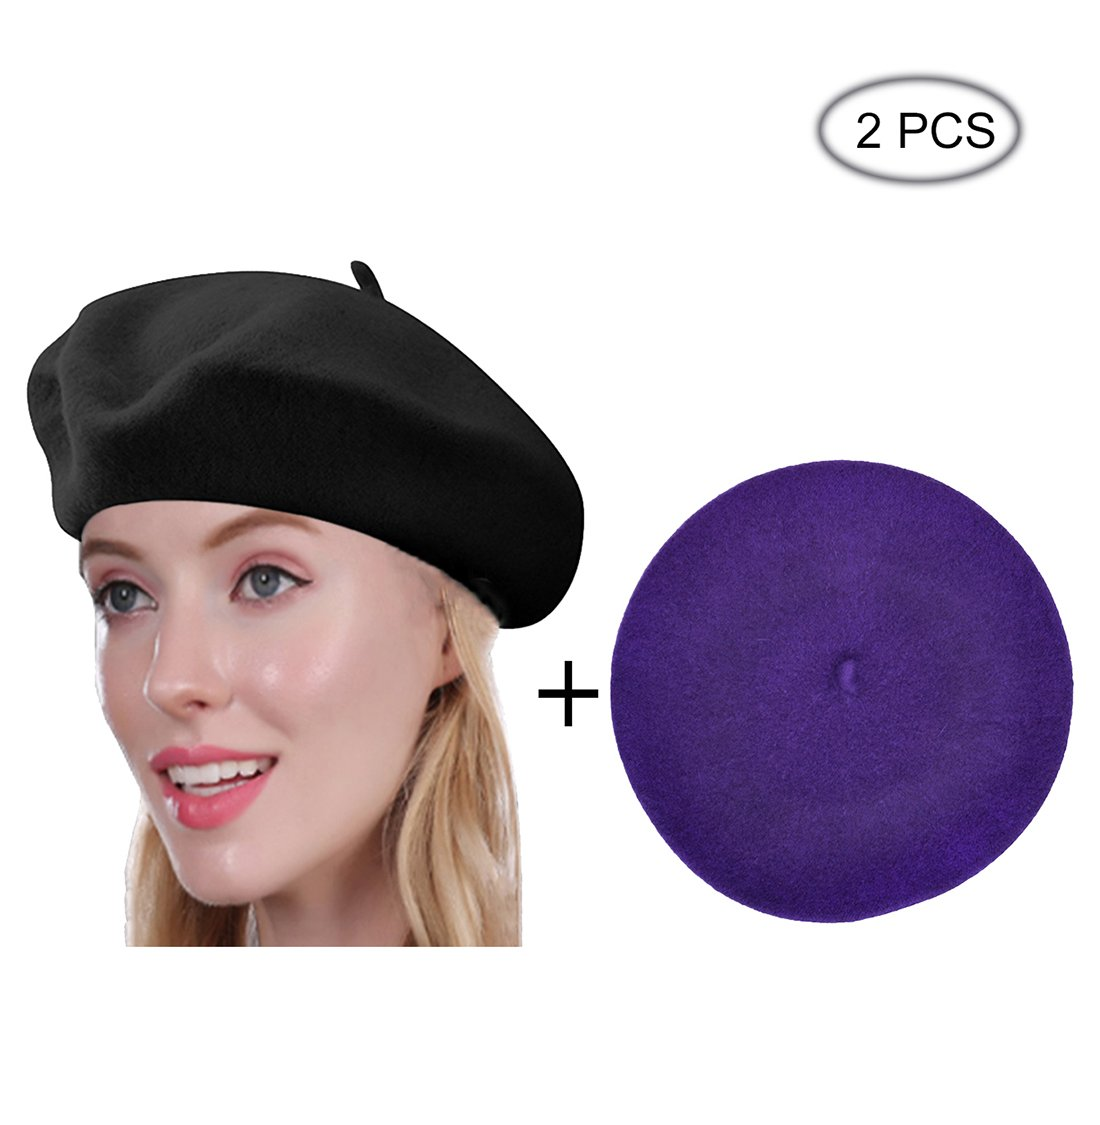 Raylarnia Beret Hat of French Vintage Style, Solid Color Hat 15colors, Elegant Soft Stretch Wool Cap, Lightweight Classic Boinas Winter Beanie-Black/Purple